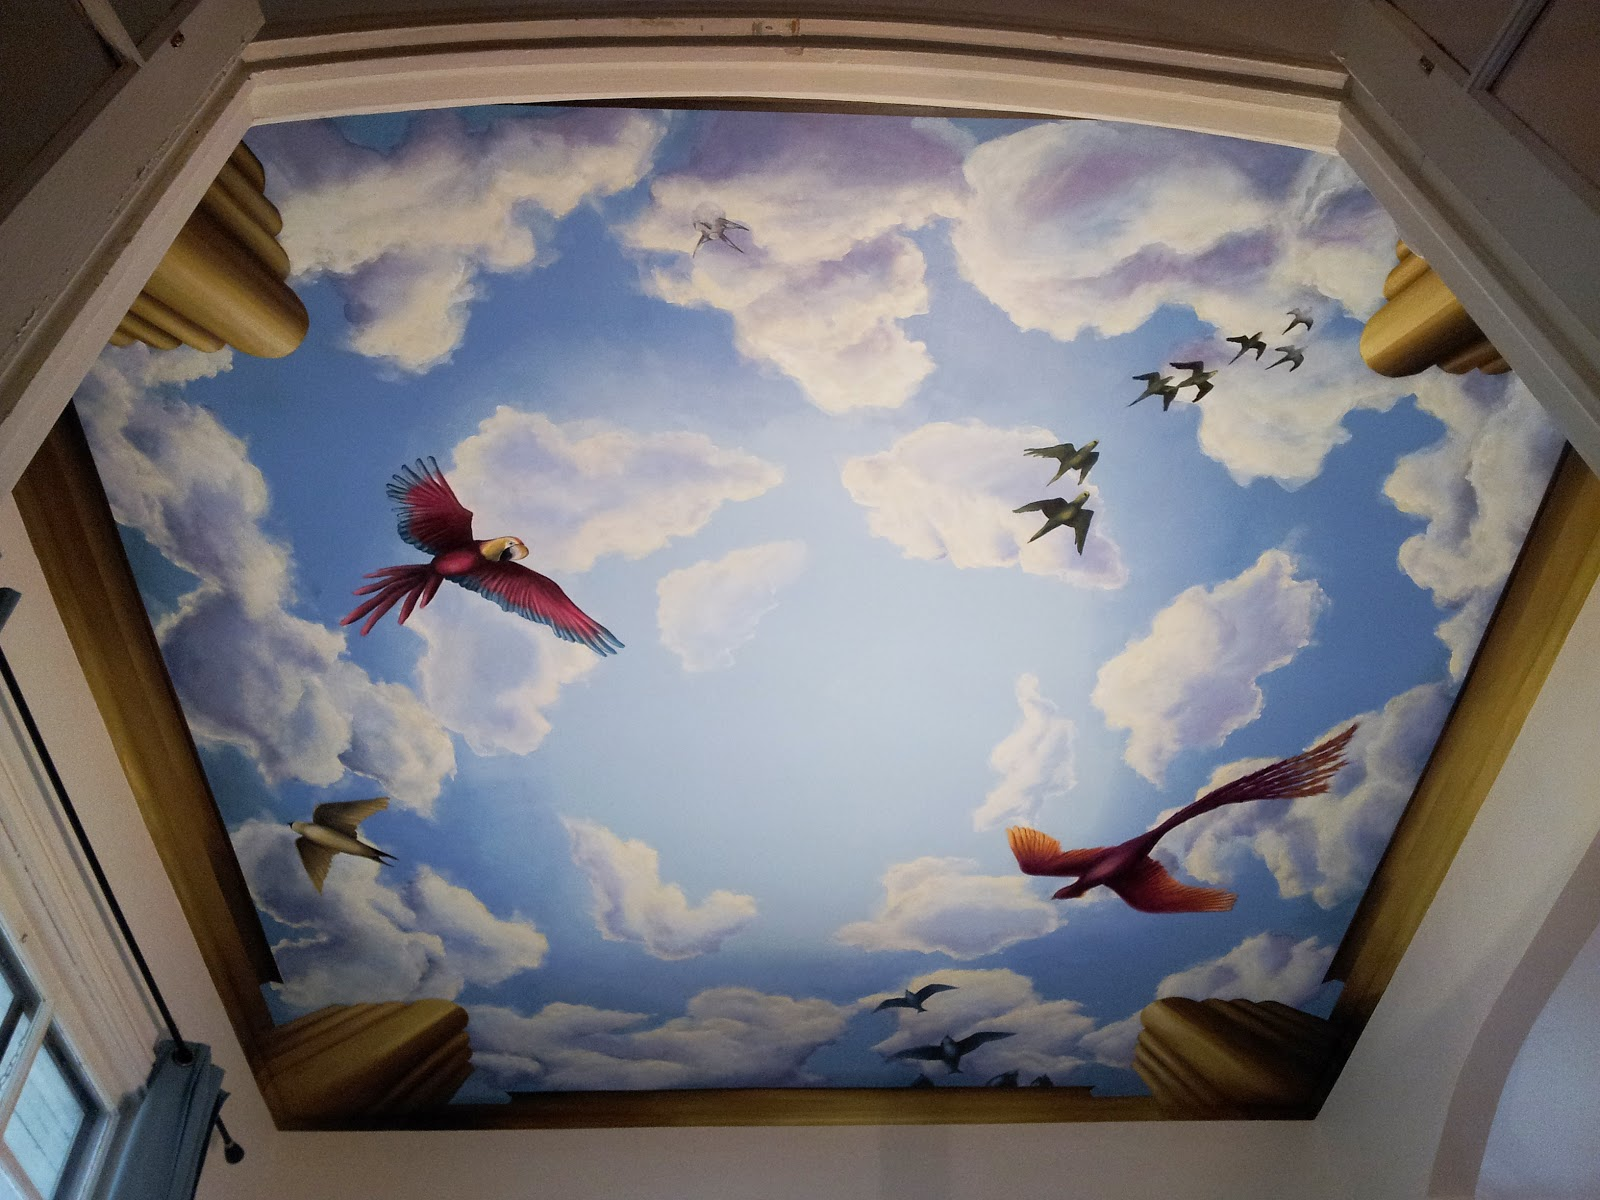 L star murals ceiling mural with birds chicago il for Mural designs